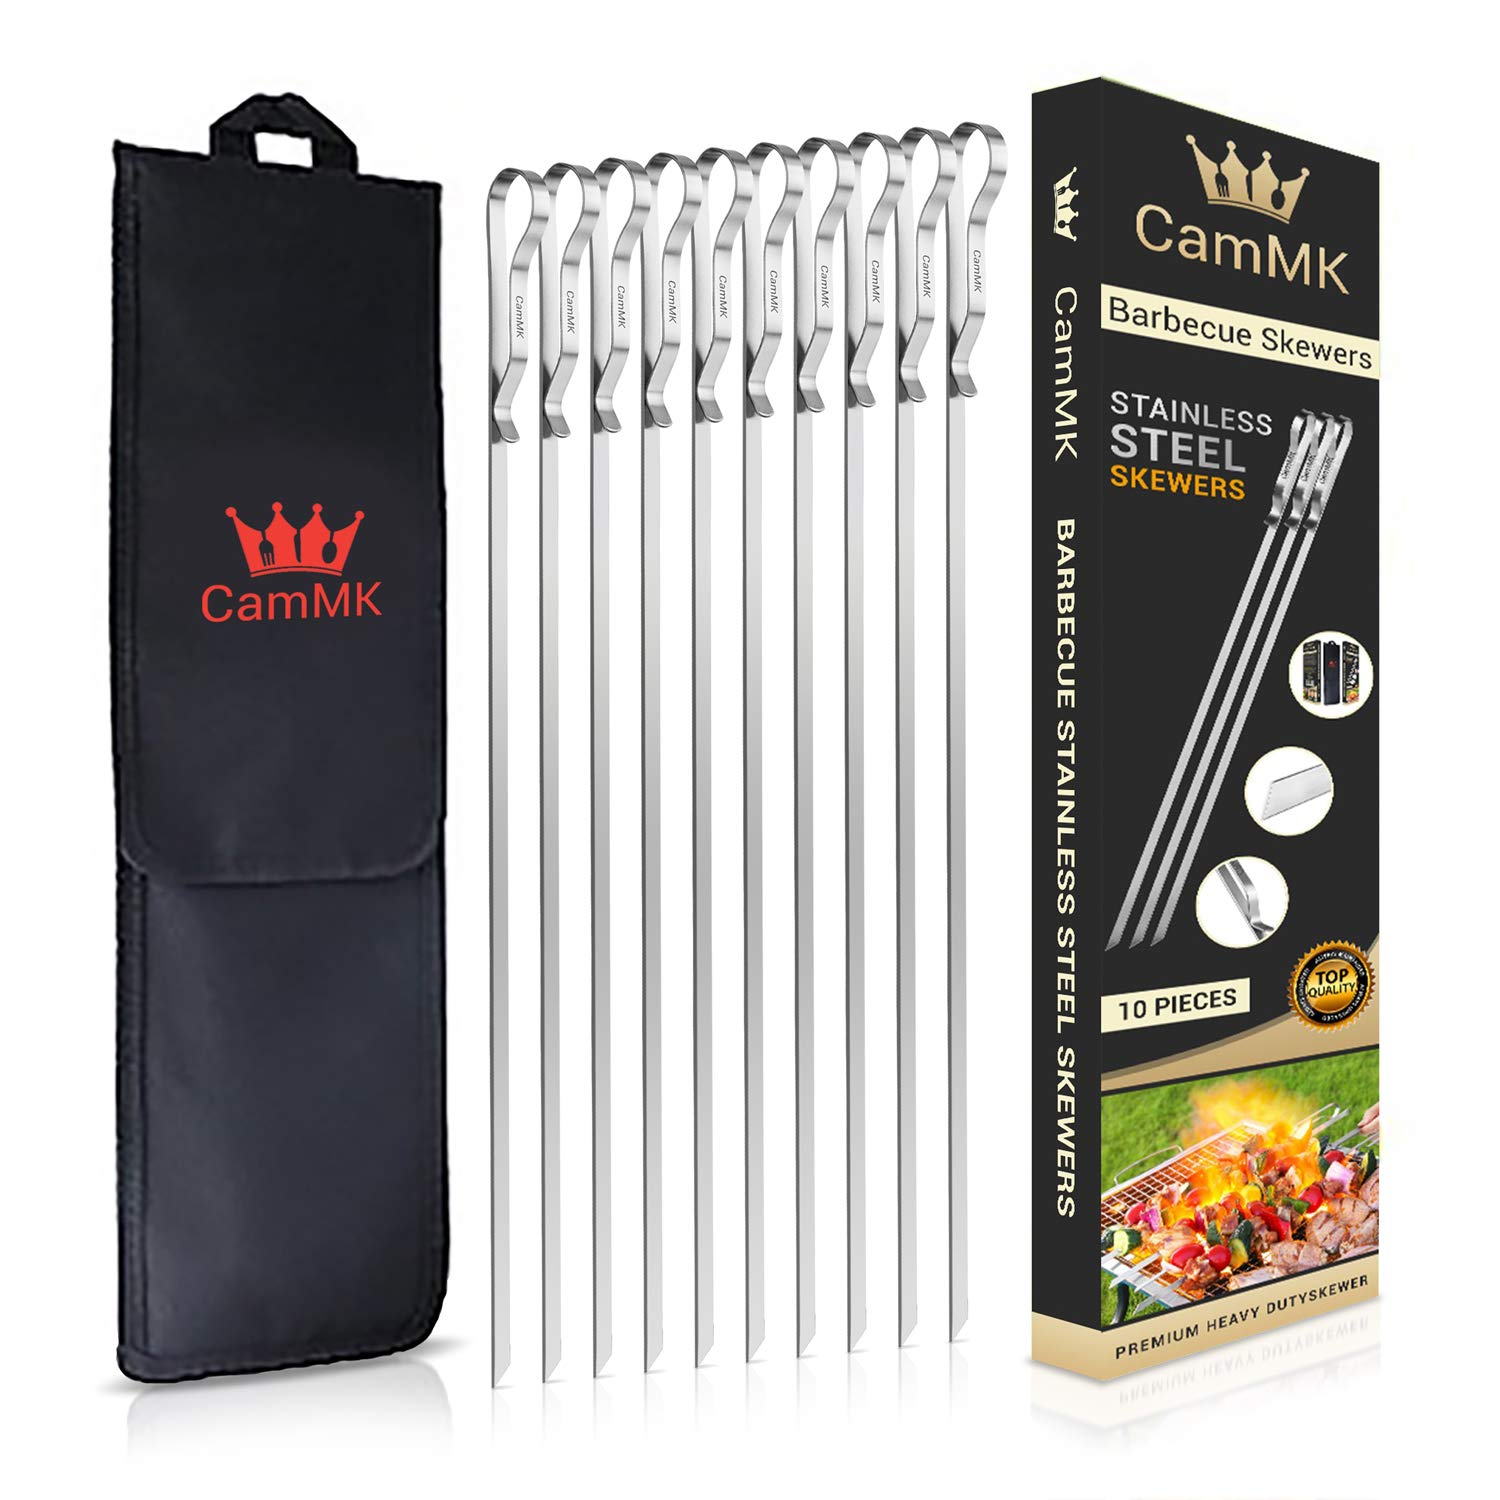 CamMK, Stainless Steel, BBQ Barbecue Kabob Skewers (17inches), Reusable, Ergonomic Handle Design, Perfect Flat Metal BBQ Grilling Skewers Set (10 Pieces + 1x Handy) by CamMK